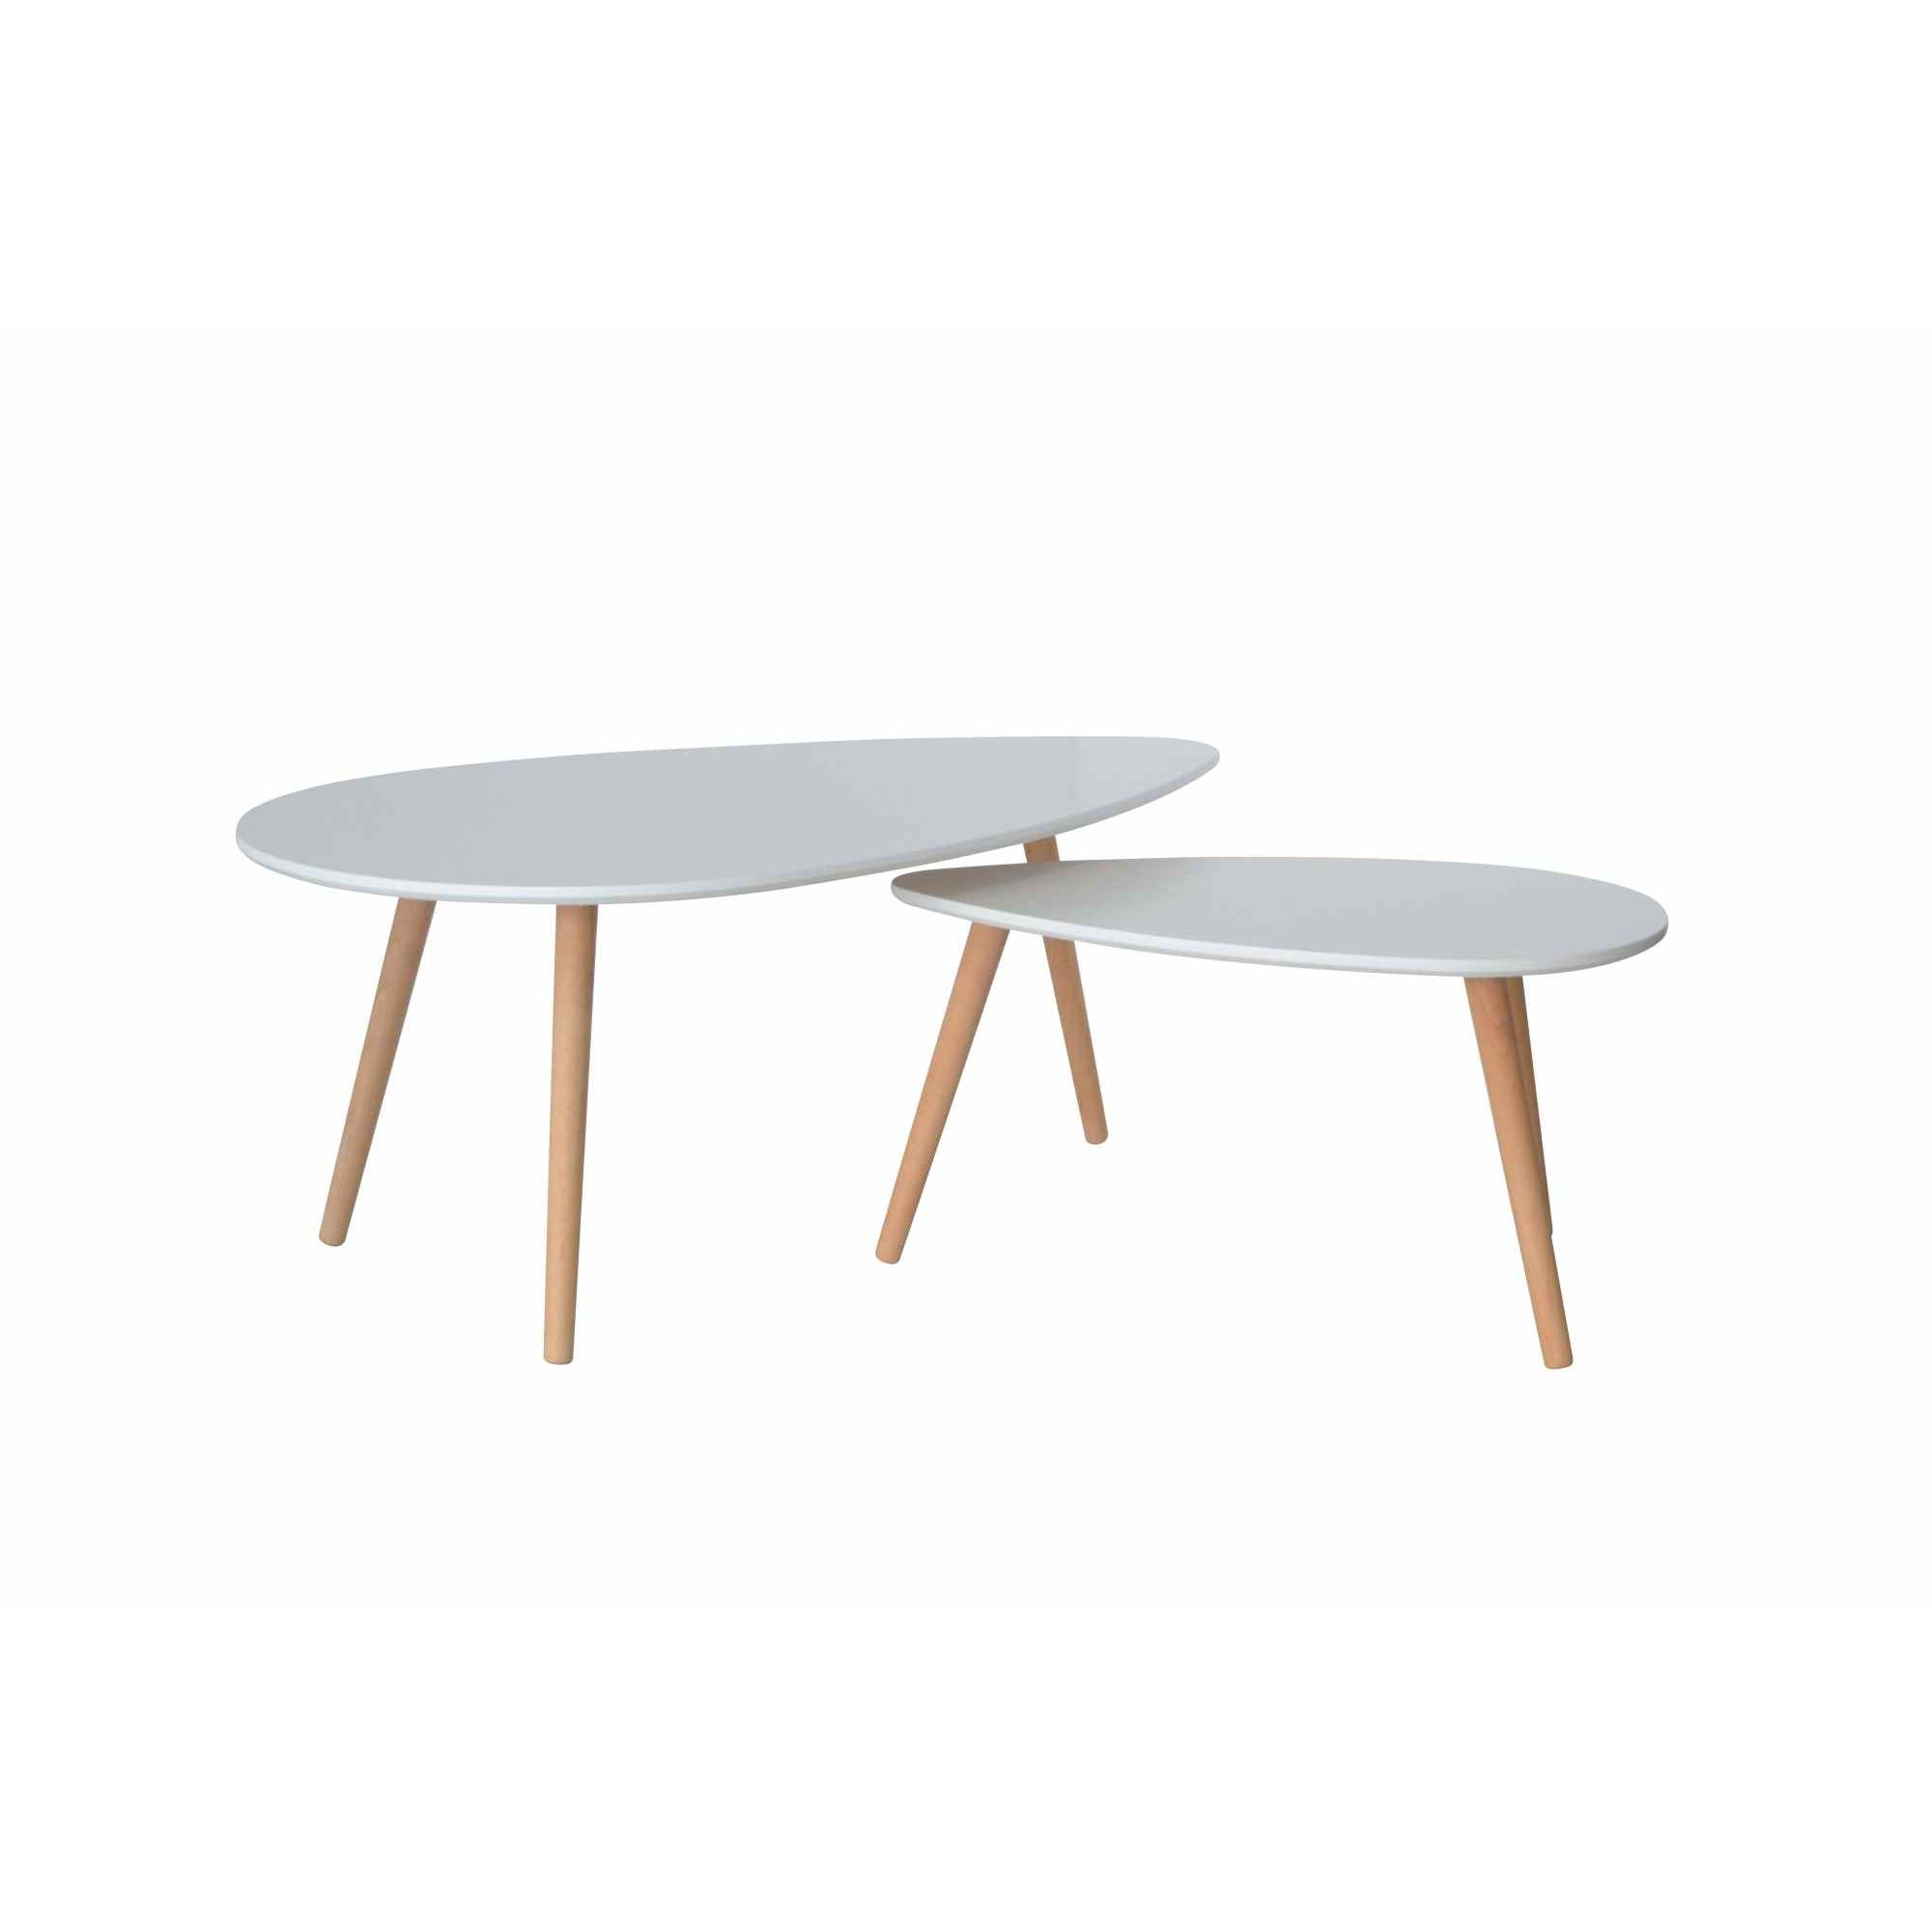 Table basse scandinave paris for Table basse blanche scandinave